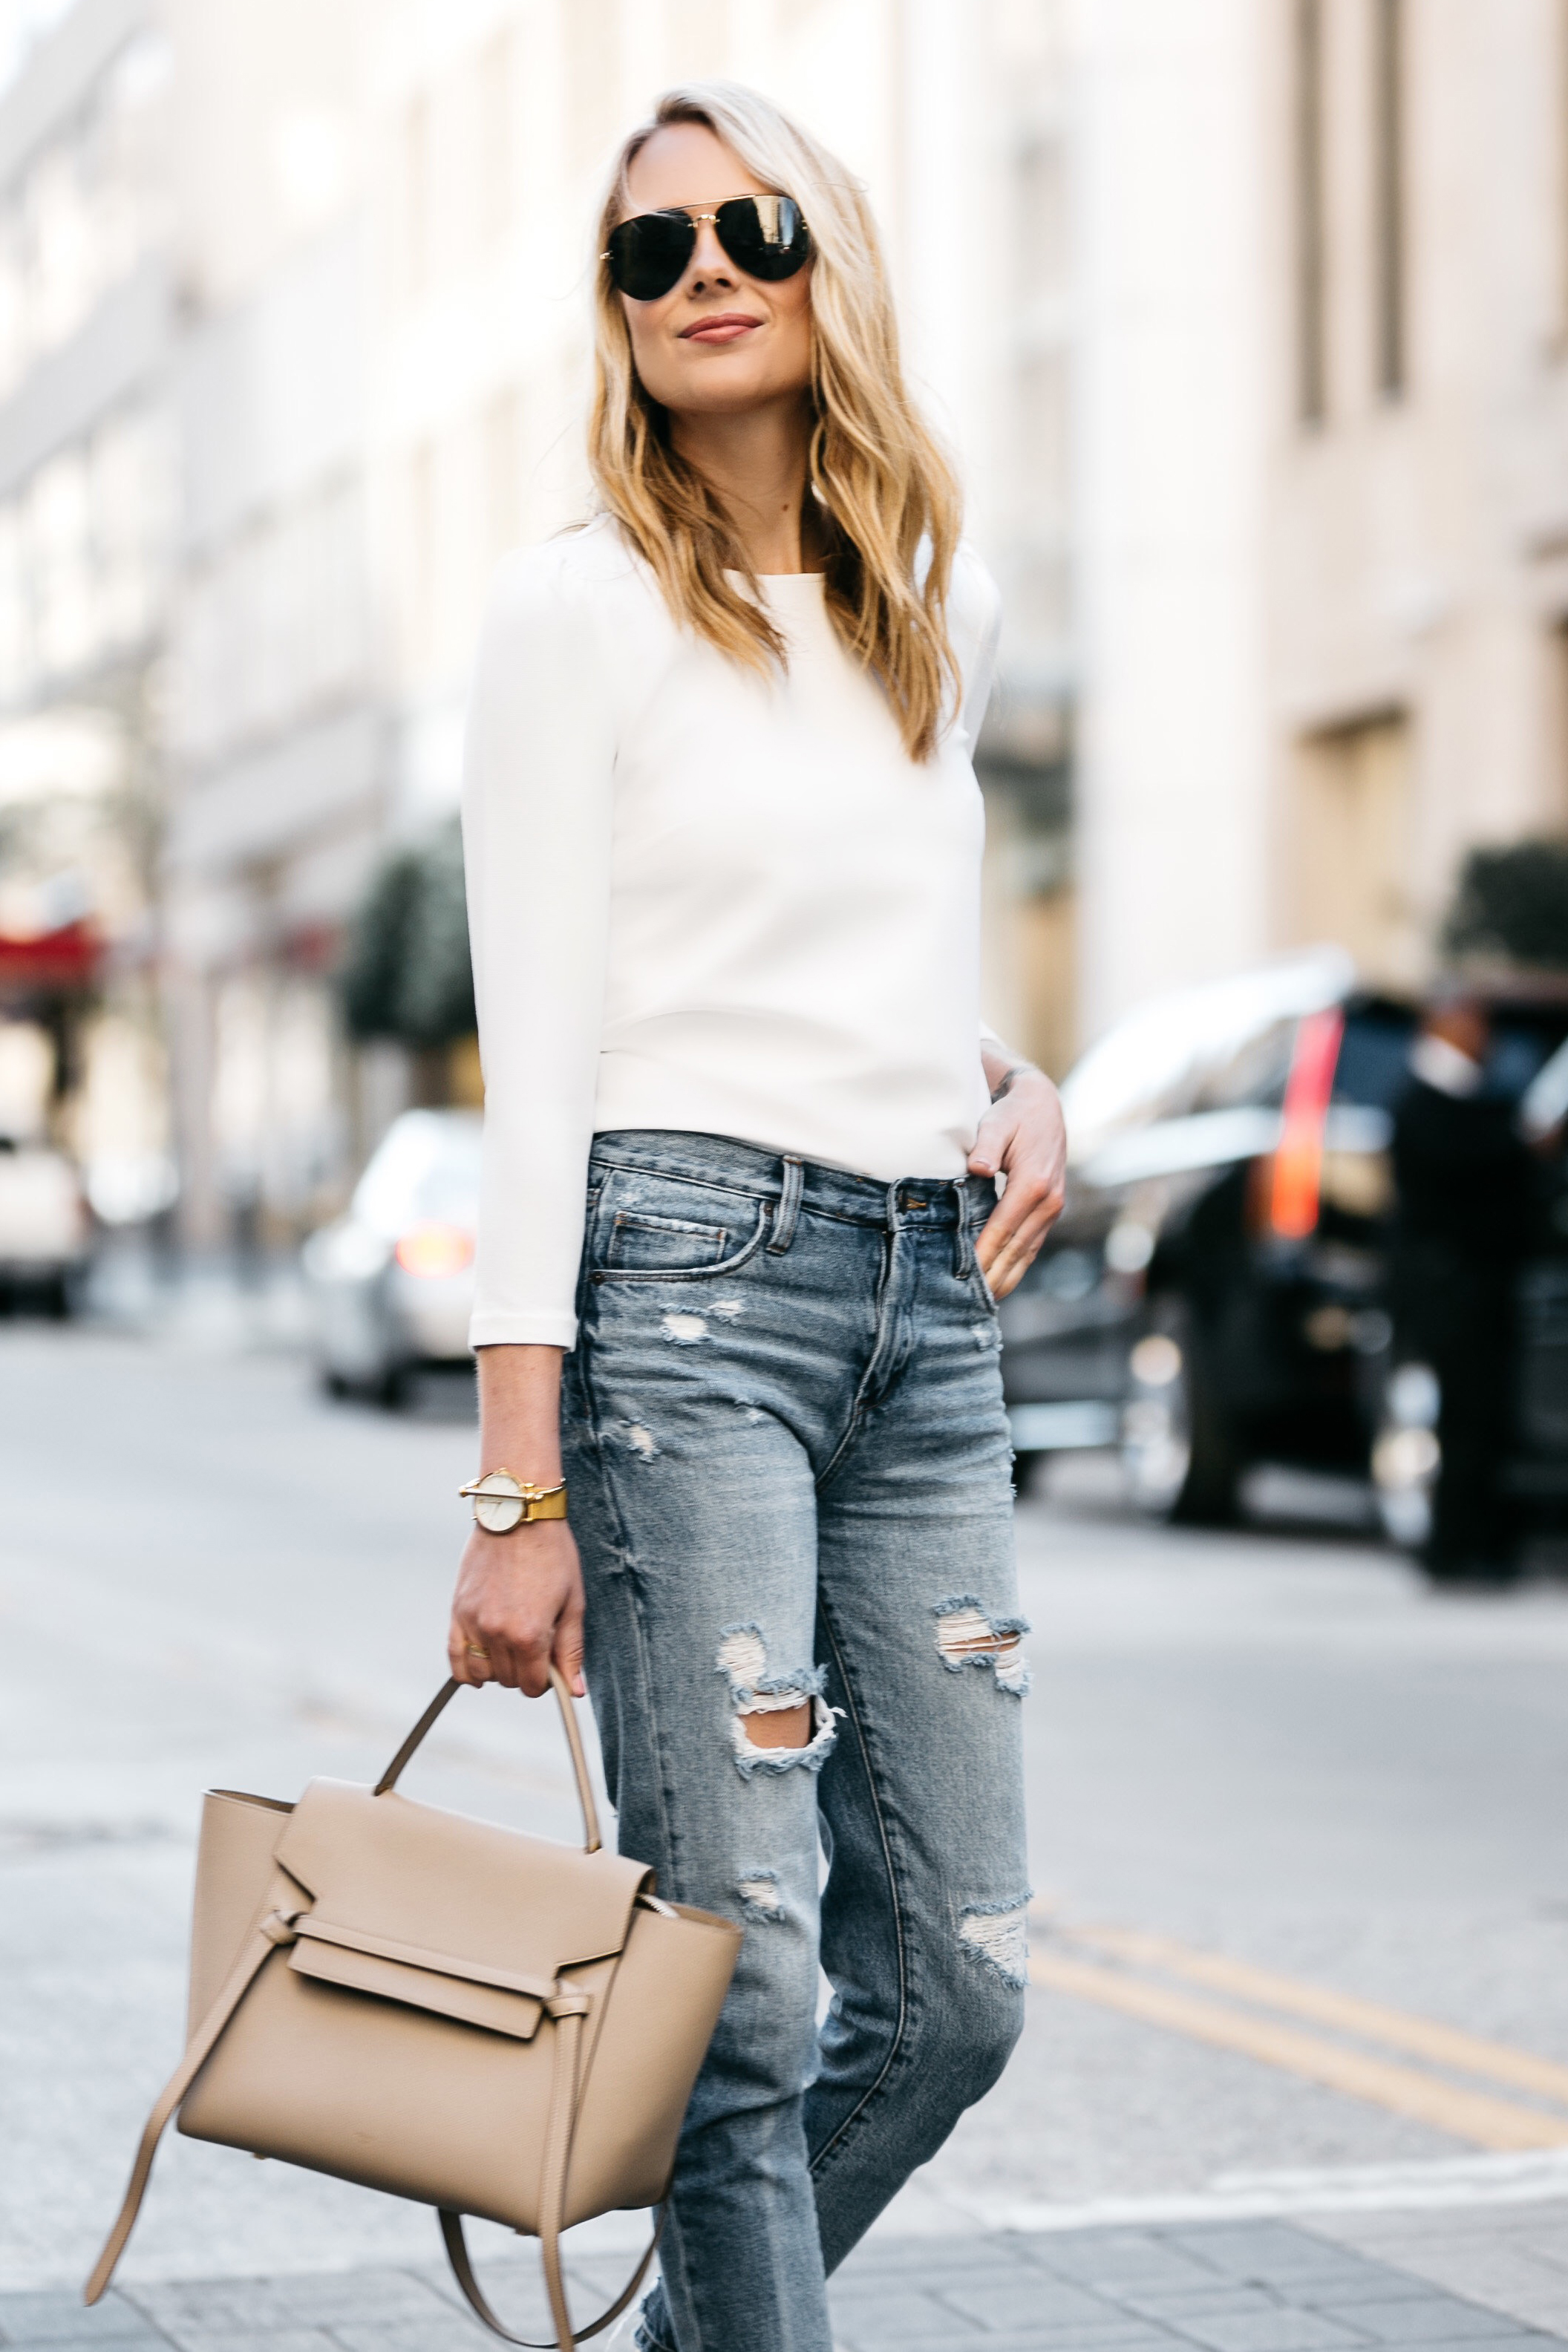 Fashion Jackson, Dallas, Blogger, Fashion Blogger, Street Style, Ann Taylor White Puff Sleeve Top, Celine Belt Bag, Blanknyc Denim Ripped Mom Jeans